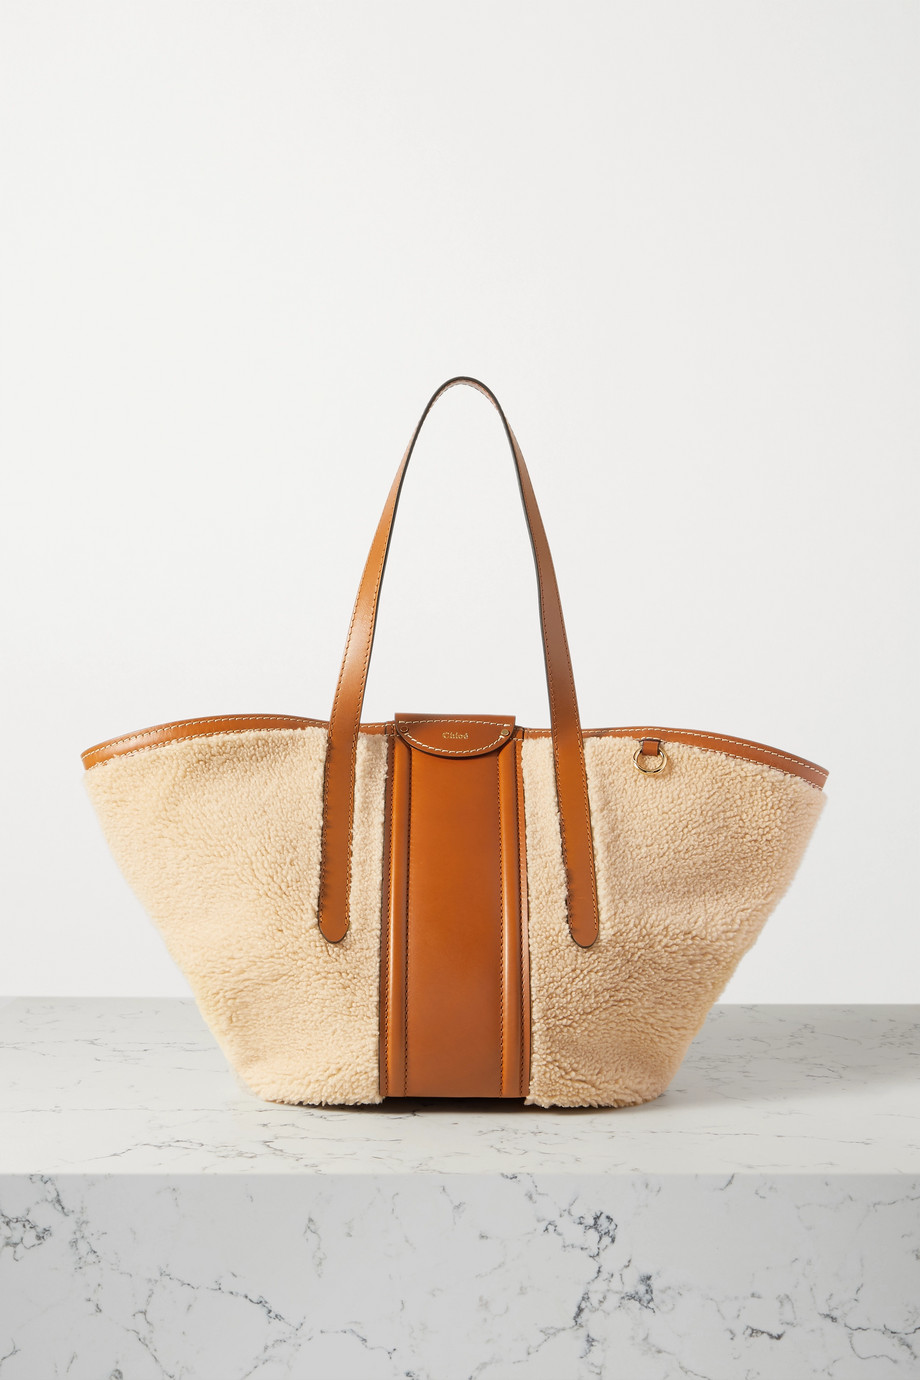 CHLOÉ Fredy medium leather-trimmed shearling tote